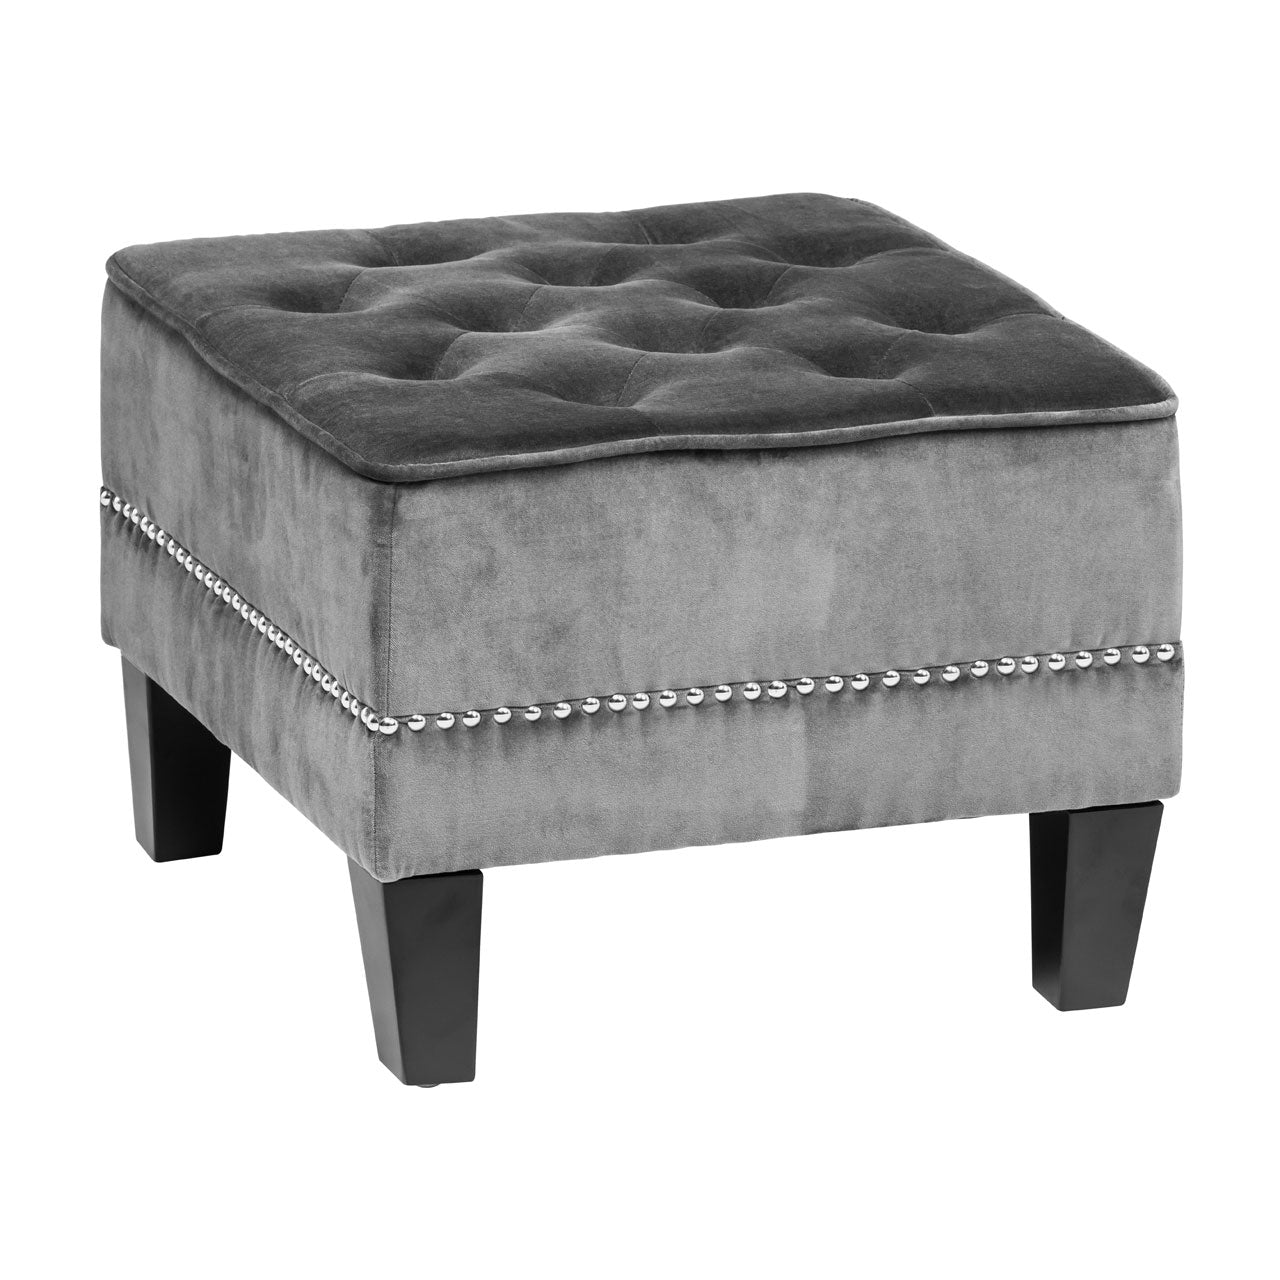 Regents Park Chesterfield Footstool in Grey